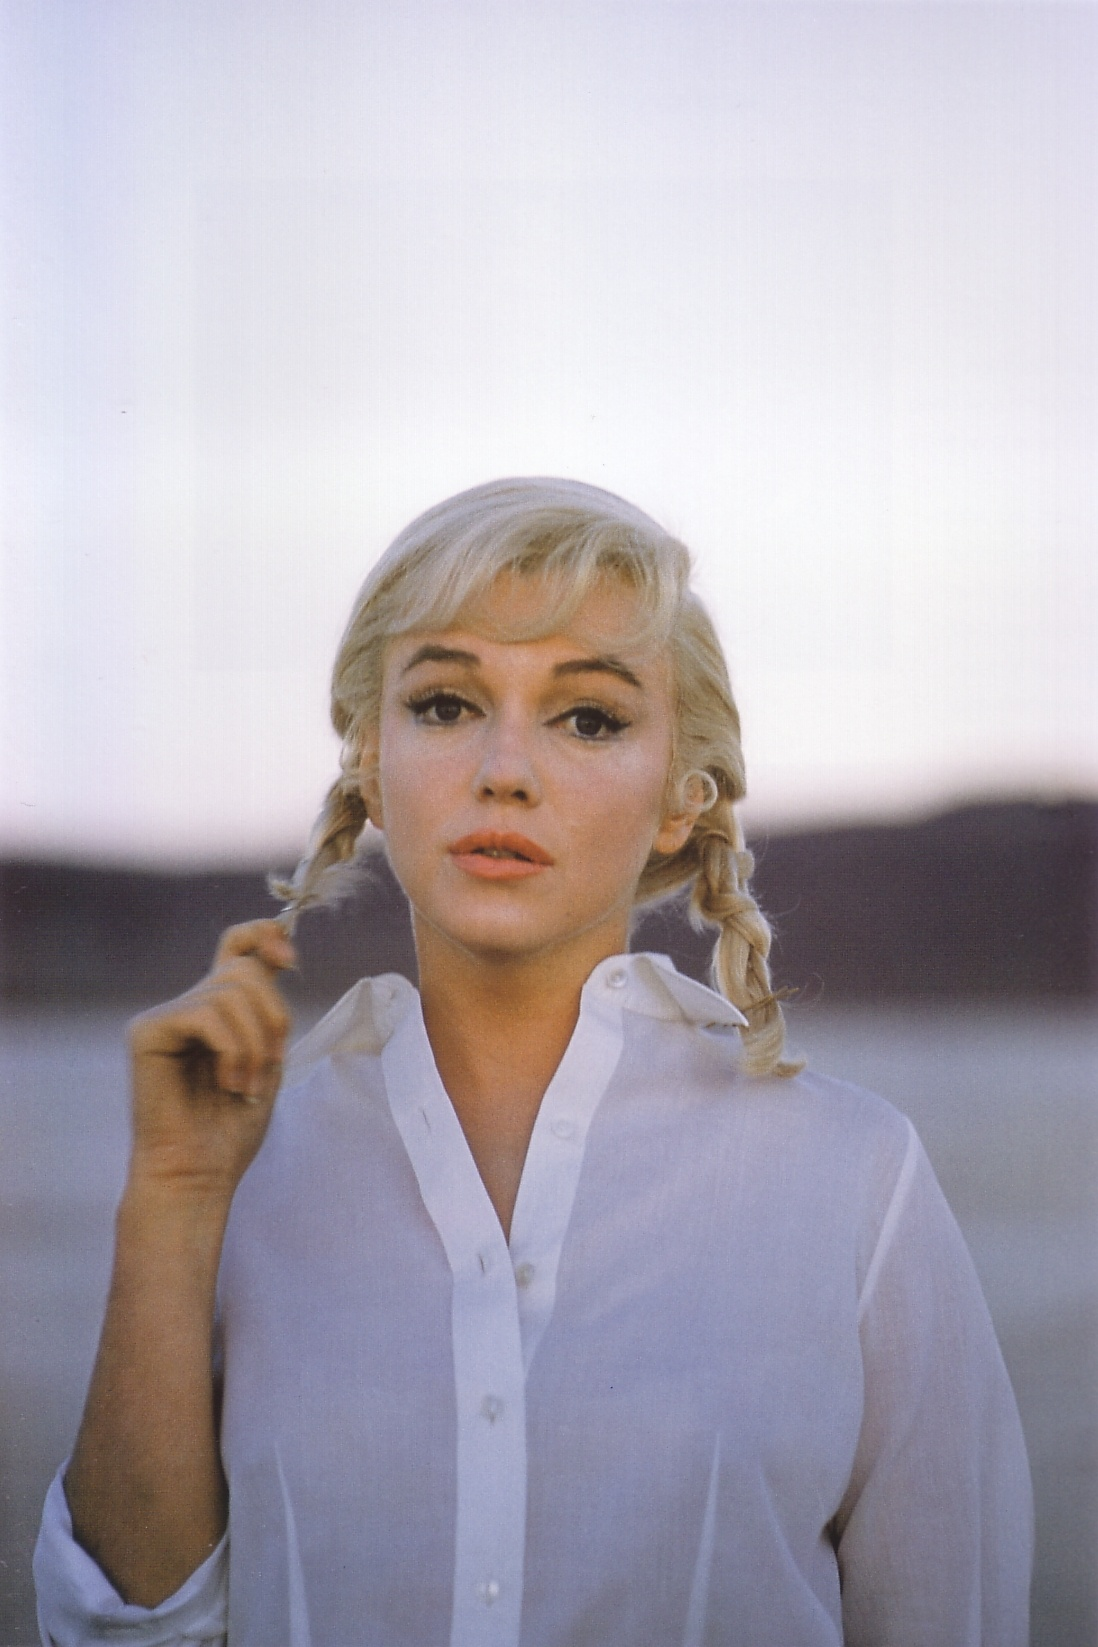 marilyn-monroe-on-the-set-of-the-misfits-in-nevada-by-eve-arnold-1961-1356159051_org